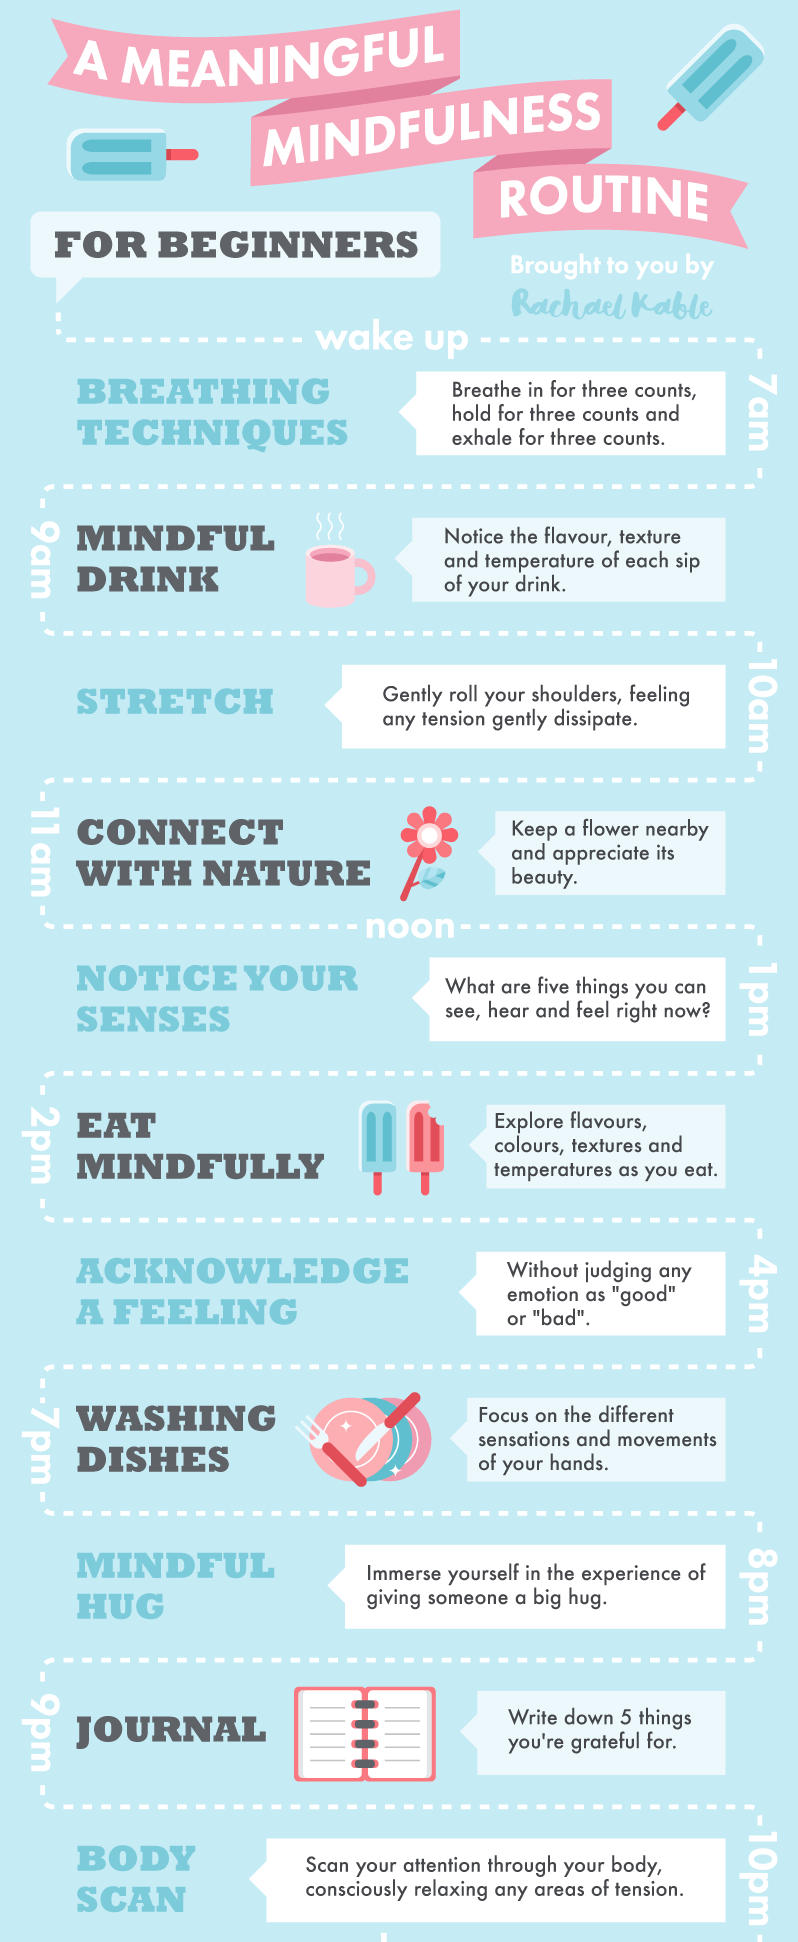 Daily Meaningful Mindfulness Routine for beginners